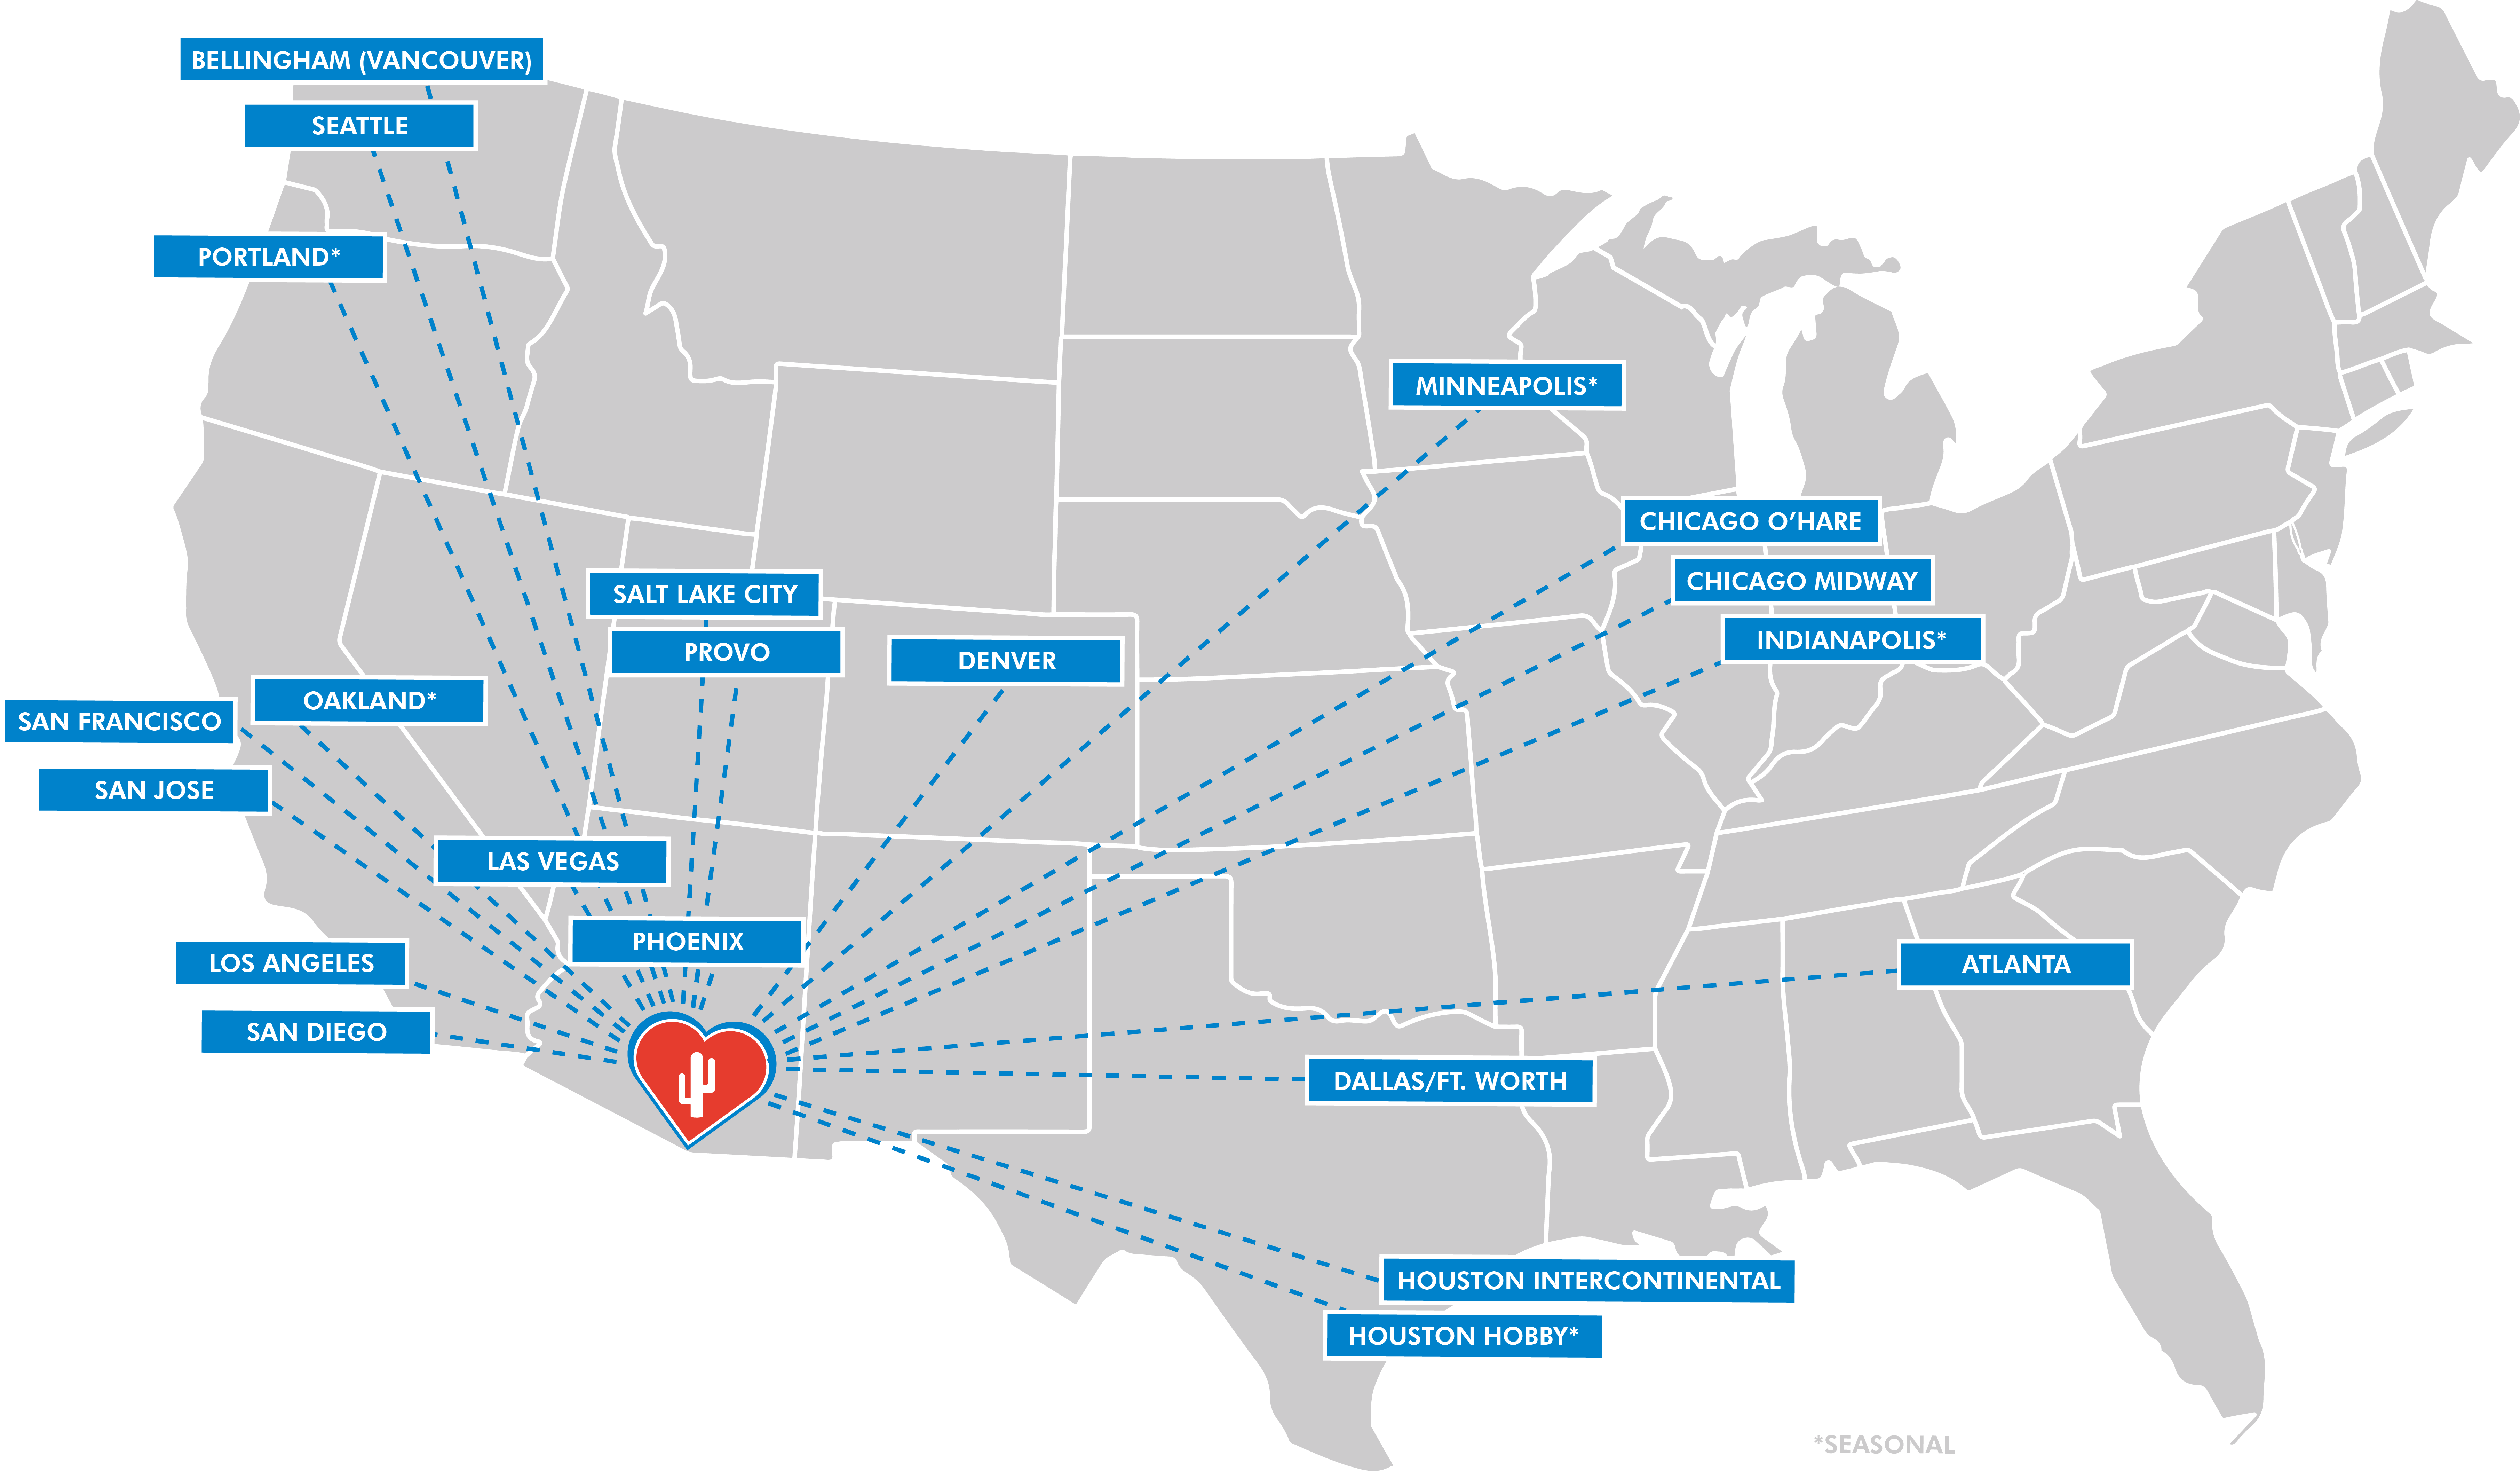 Nonstop Destinations to/from Tucson International Airport (TUS) on flat global map of world, united airlines system map, united continental airlines flight map, united airlines destinations map, american airlines map routes world, united airlines routes map flight paths, alaska airlines route map world,